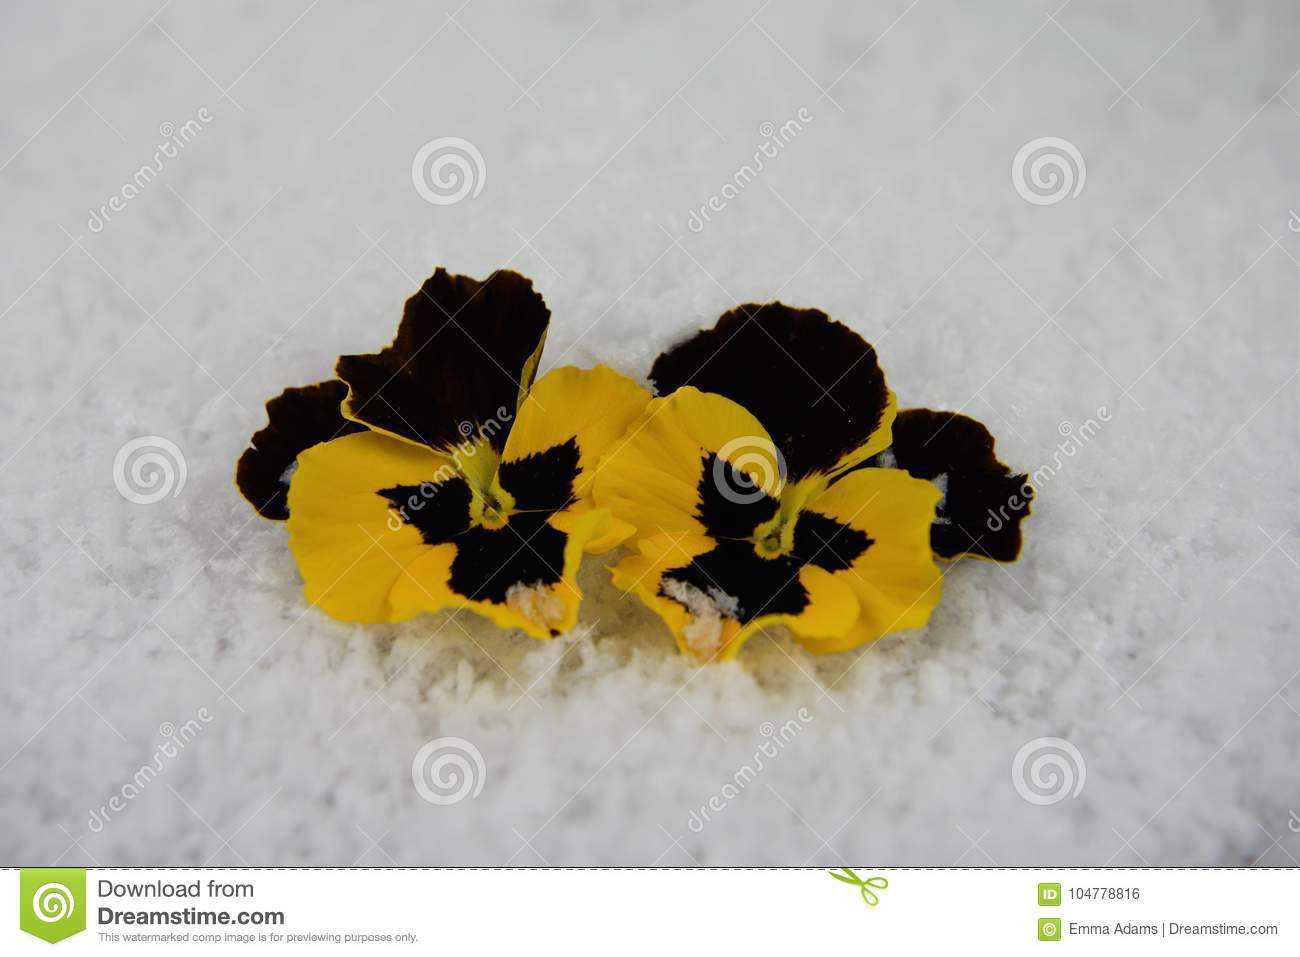 Winter Season Photography Image Of Yellow And Black Pansy Flowers In